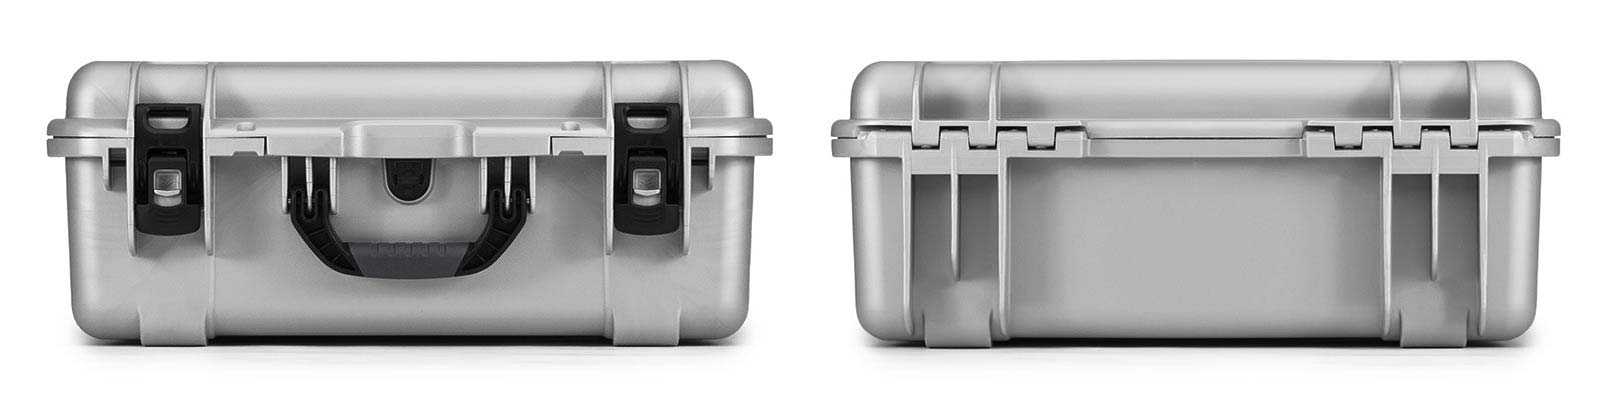 Nanuk 940 in Silver Front and Back Views